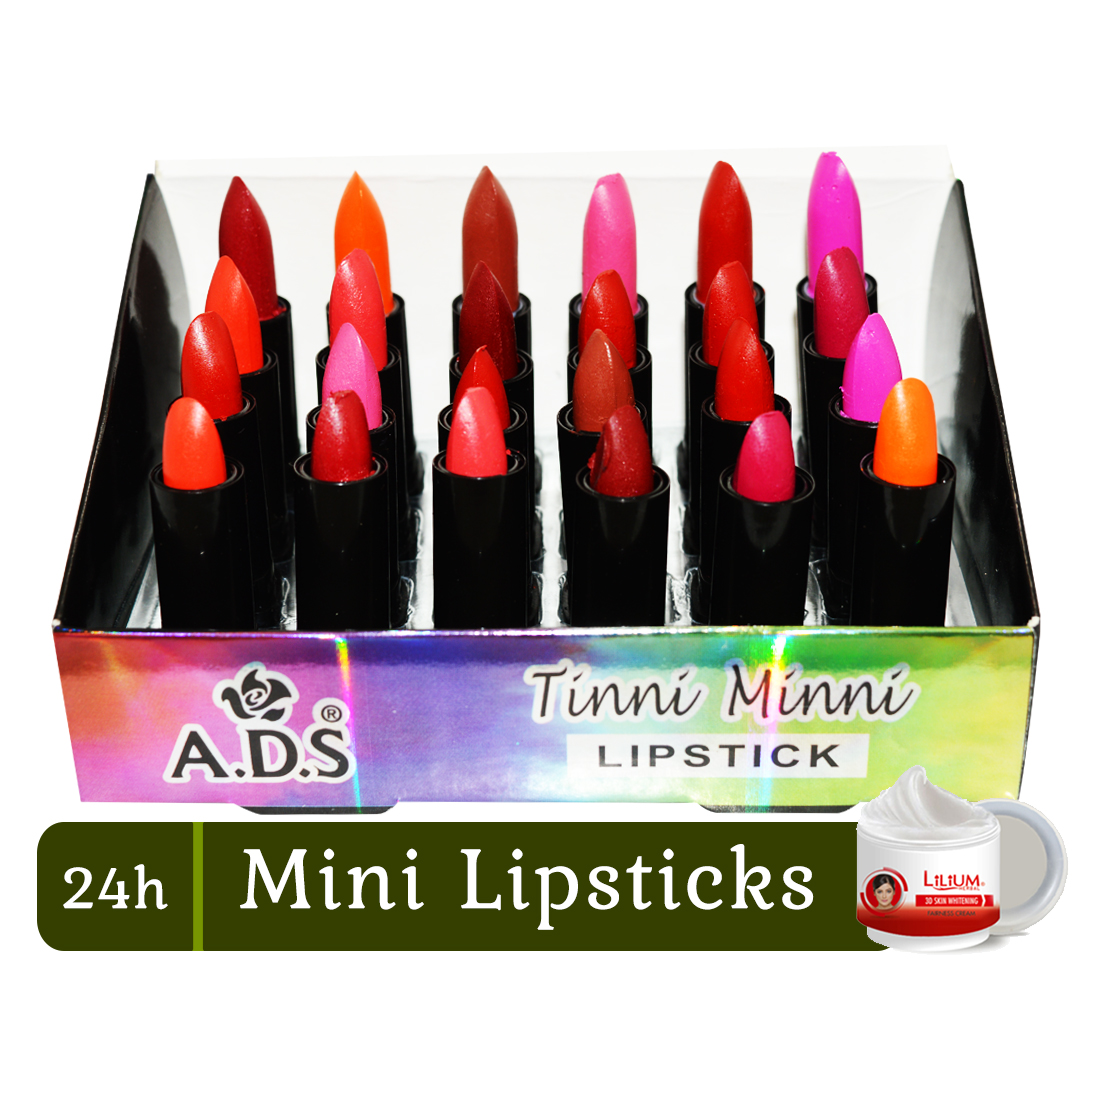 "ADS 24h Tinni Minni With Vitamin """"E"""" Lipstick Pack of 24 With Skin Whitening Cream"